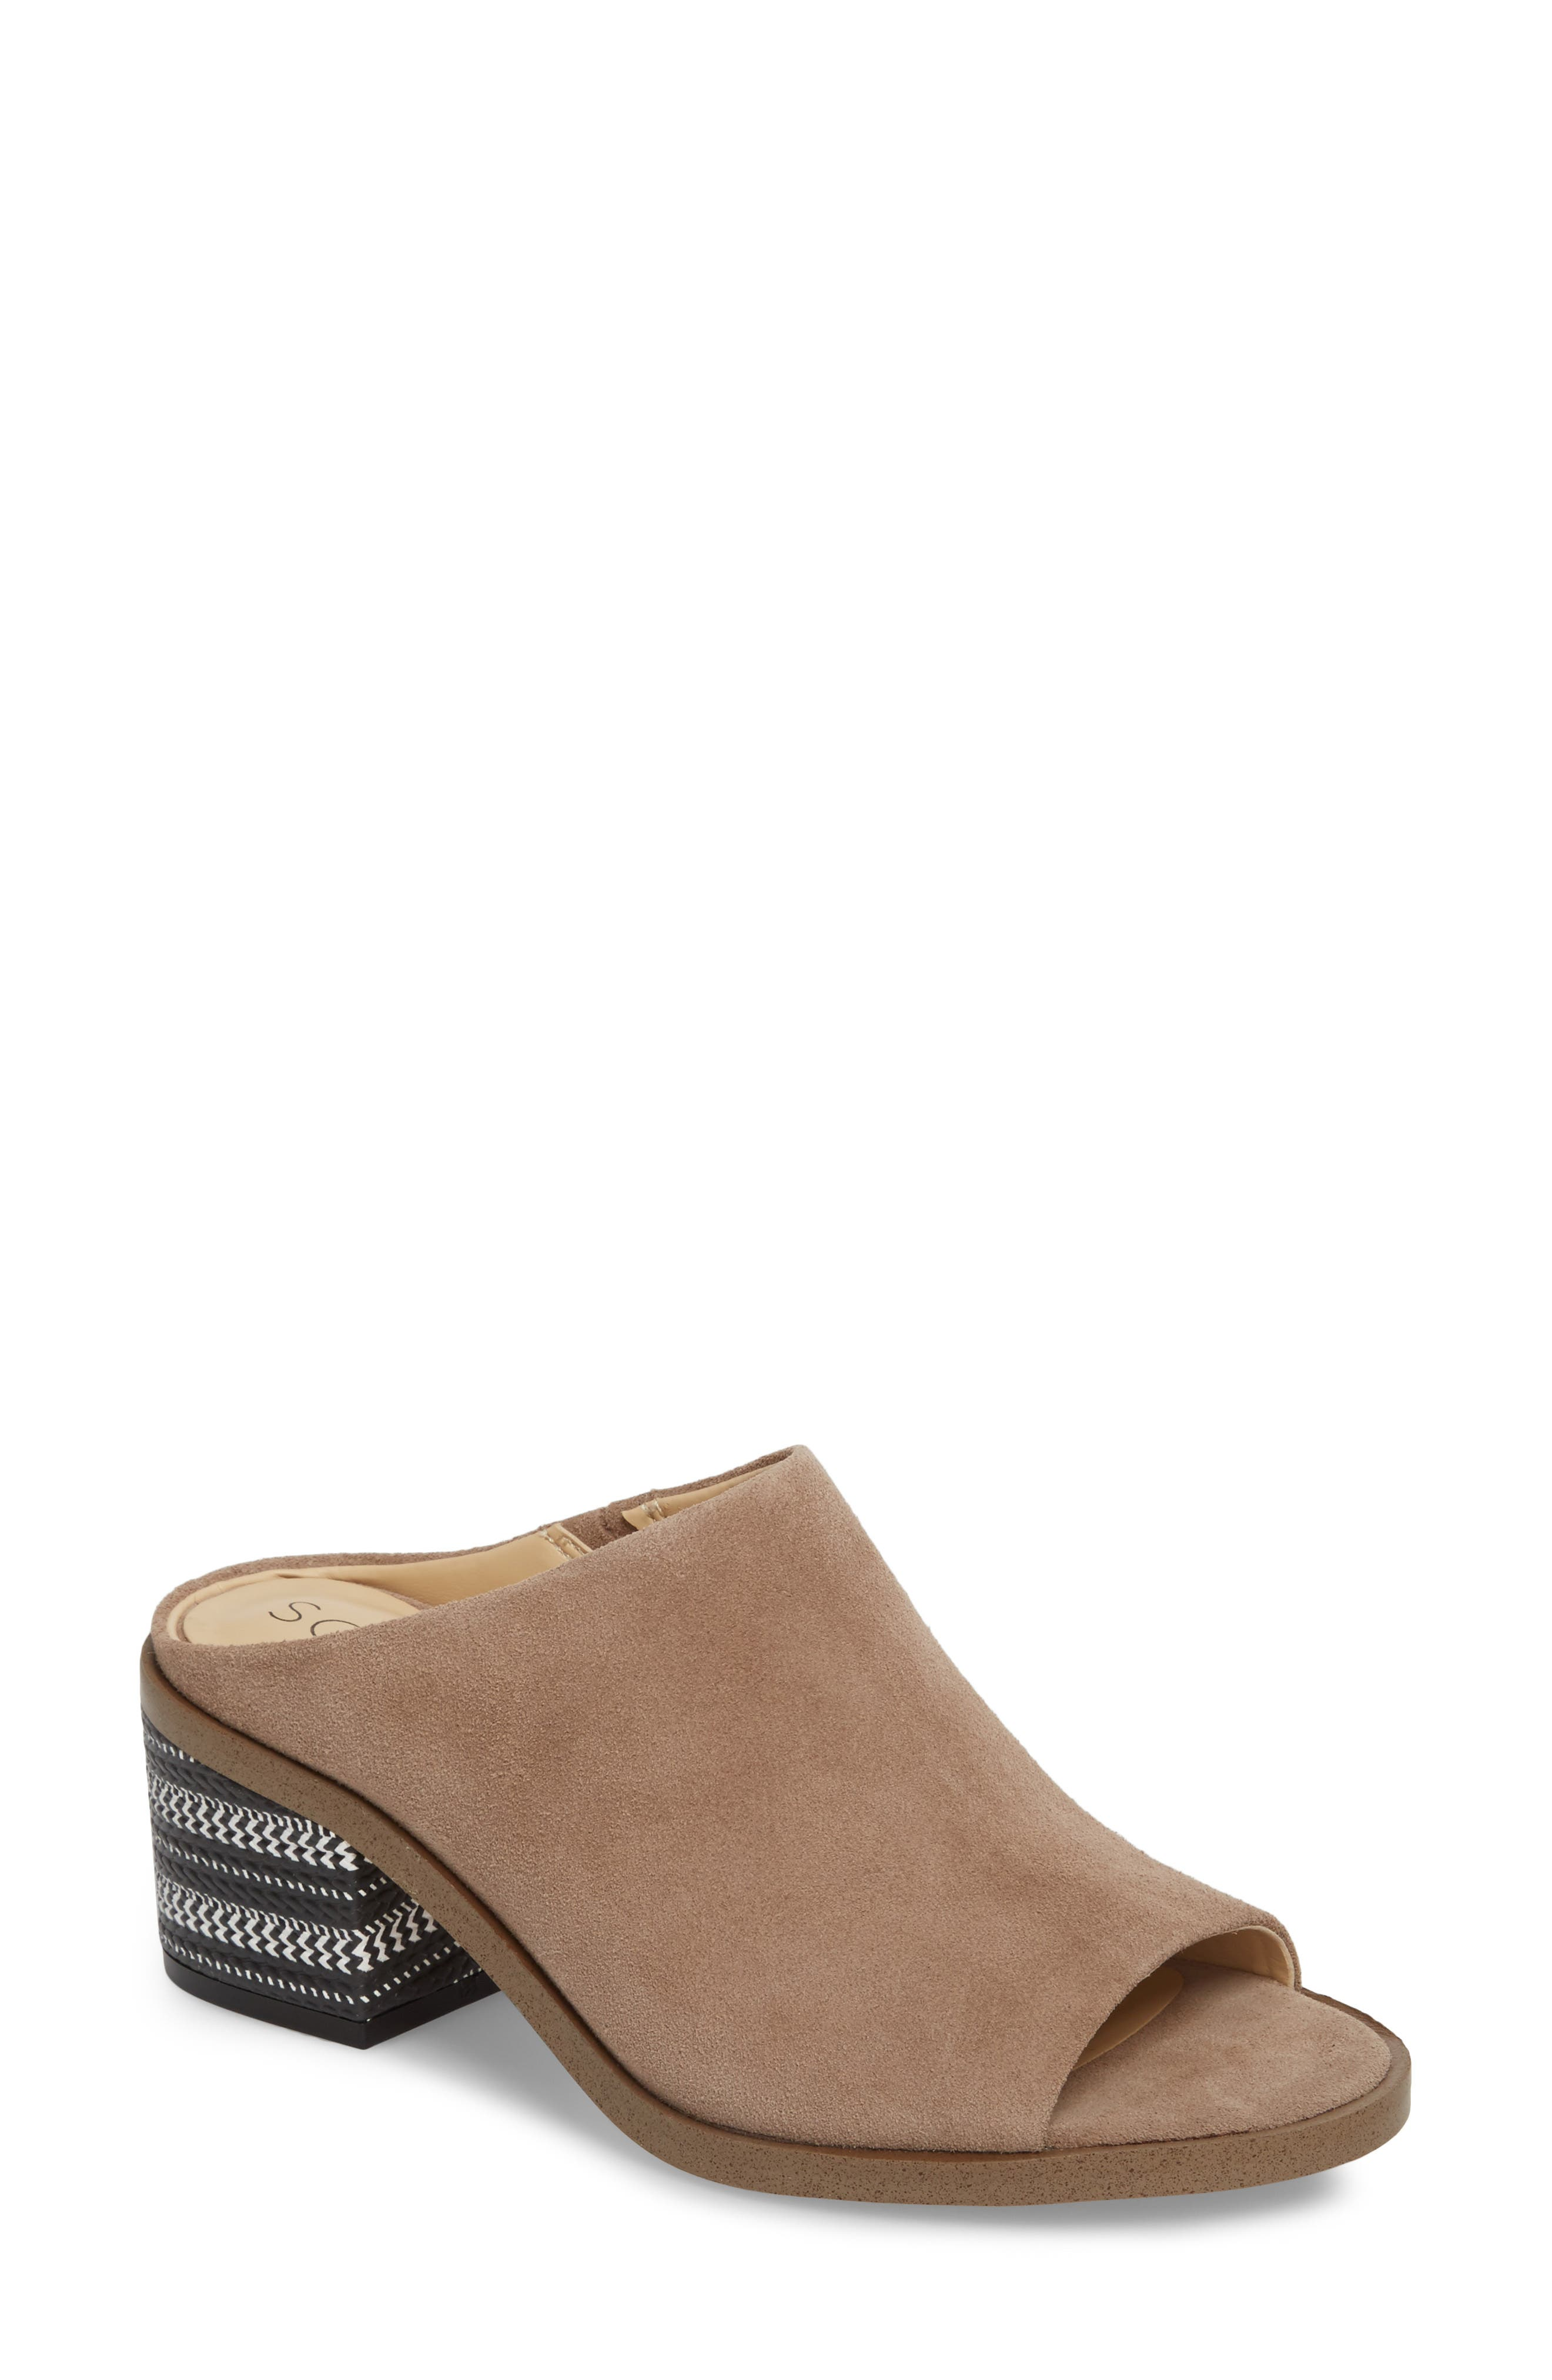 Tammie Mule,                             Main thumbnail 1, color,                             Taupe